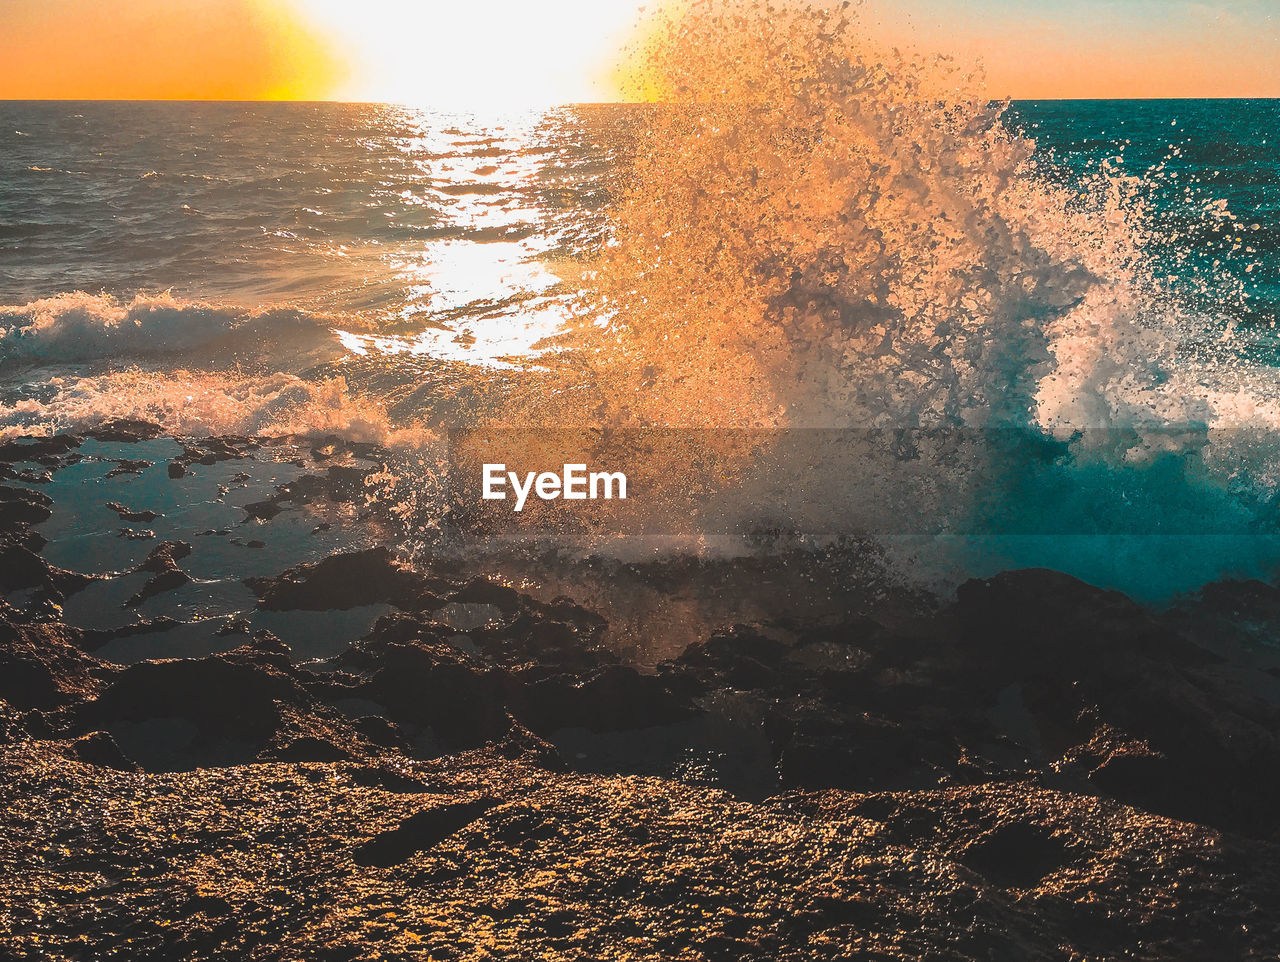 water, sea, nature, beauty in nature, wave, outdoors, no people, motion, sunset, power in nature, scenics, sunlight, day, beach, crash, sky